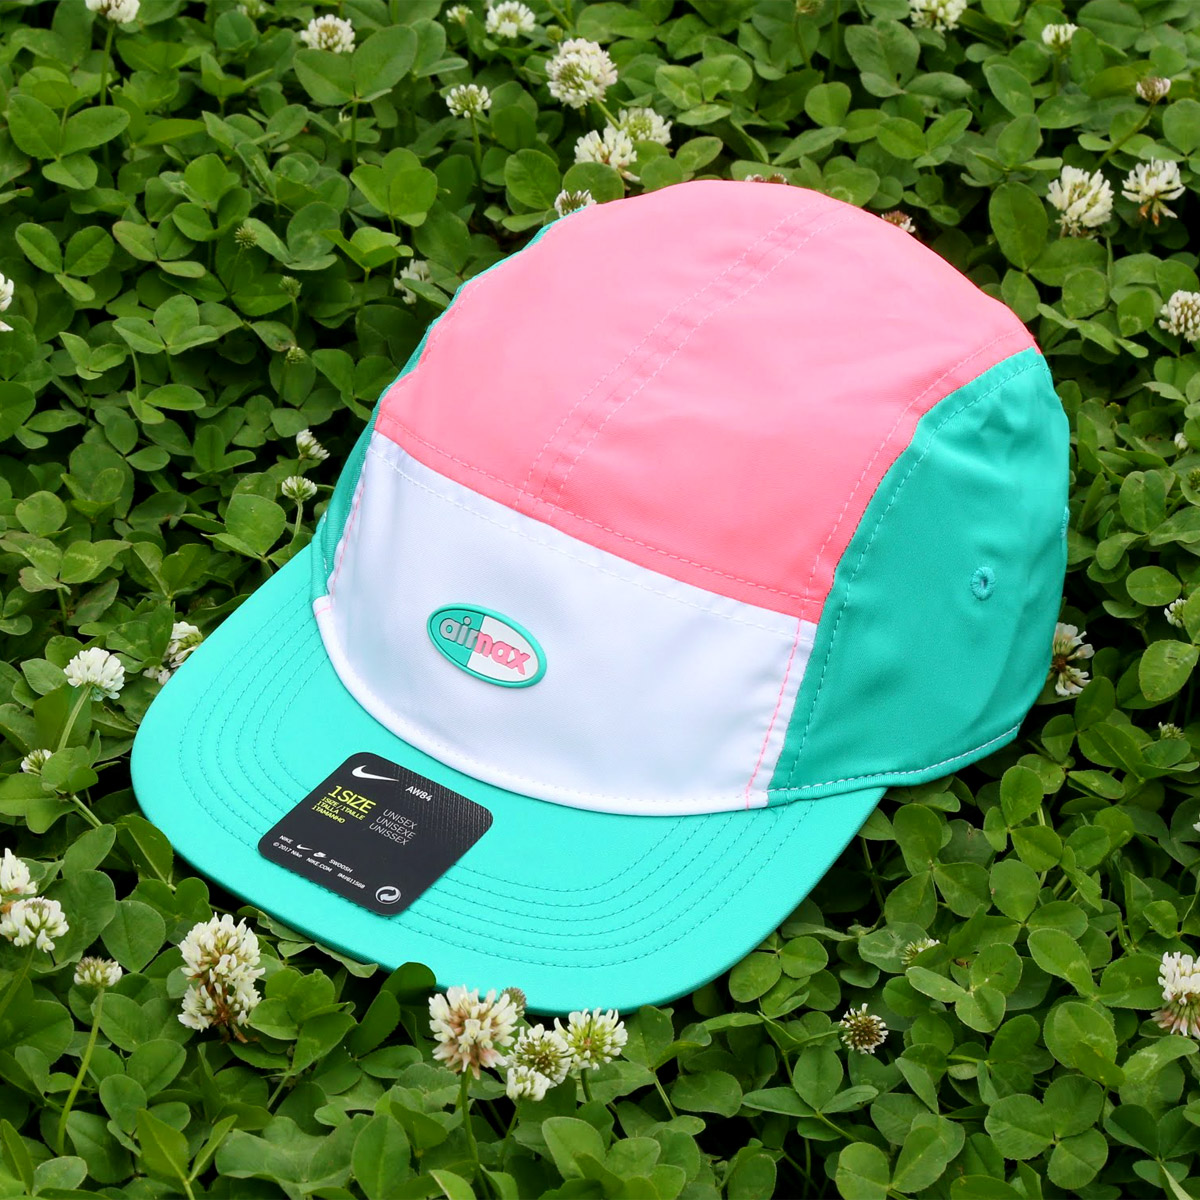 95f45bba615 NIKE U NSW AROBILL AW84 CAP AIR MAX (Kie Ney AMAX AW84 cap) (WHITE SUNSET  PULSE KINETIC GREEN) 18SU-S